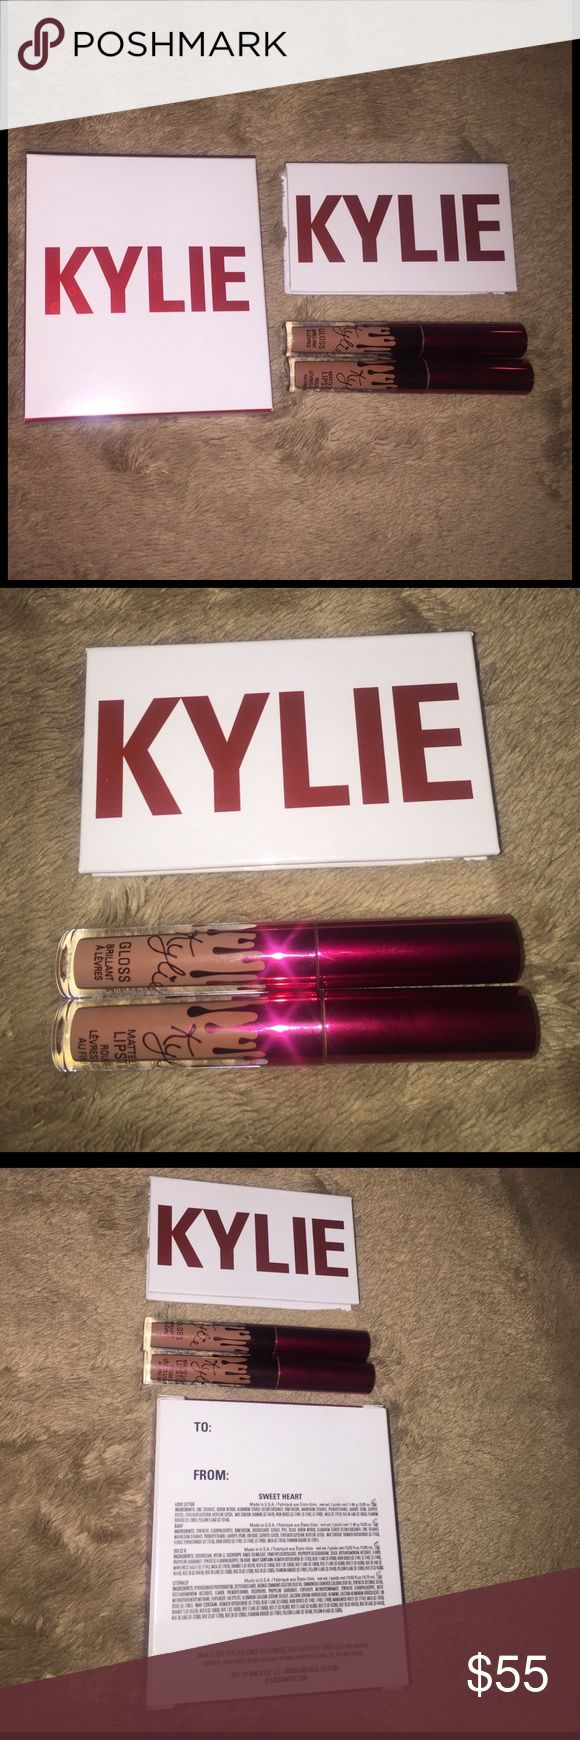 Kylie Sweet Heart Mini Kit ❤️👄💄 Authentic Brand New Valentine's Day Edition Sweet Heart Kit with Two Eyeshadow and Two Lip Mini's From Kylie Cosmetics.  Lip Shades are ;  -Literally Gloss Mini  -Dolce K Matte Mini   Eyeshadow Shades are ;  -Love Letter (Shimmery Silver Color) -Baby (Can be used as blush too!)  100% Authentic (fakes/dupes aren't even out yet)   and NEVER EVER coming back on the Kylie website because they were LIMITED EDITION !  Price is slightly negotiable!   COMES WITH…